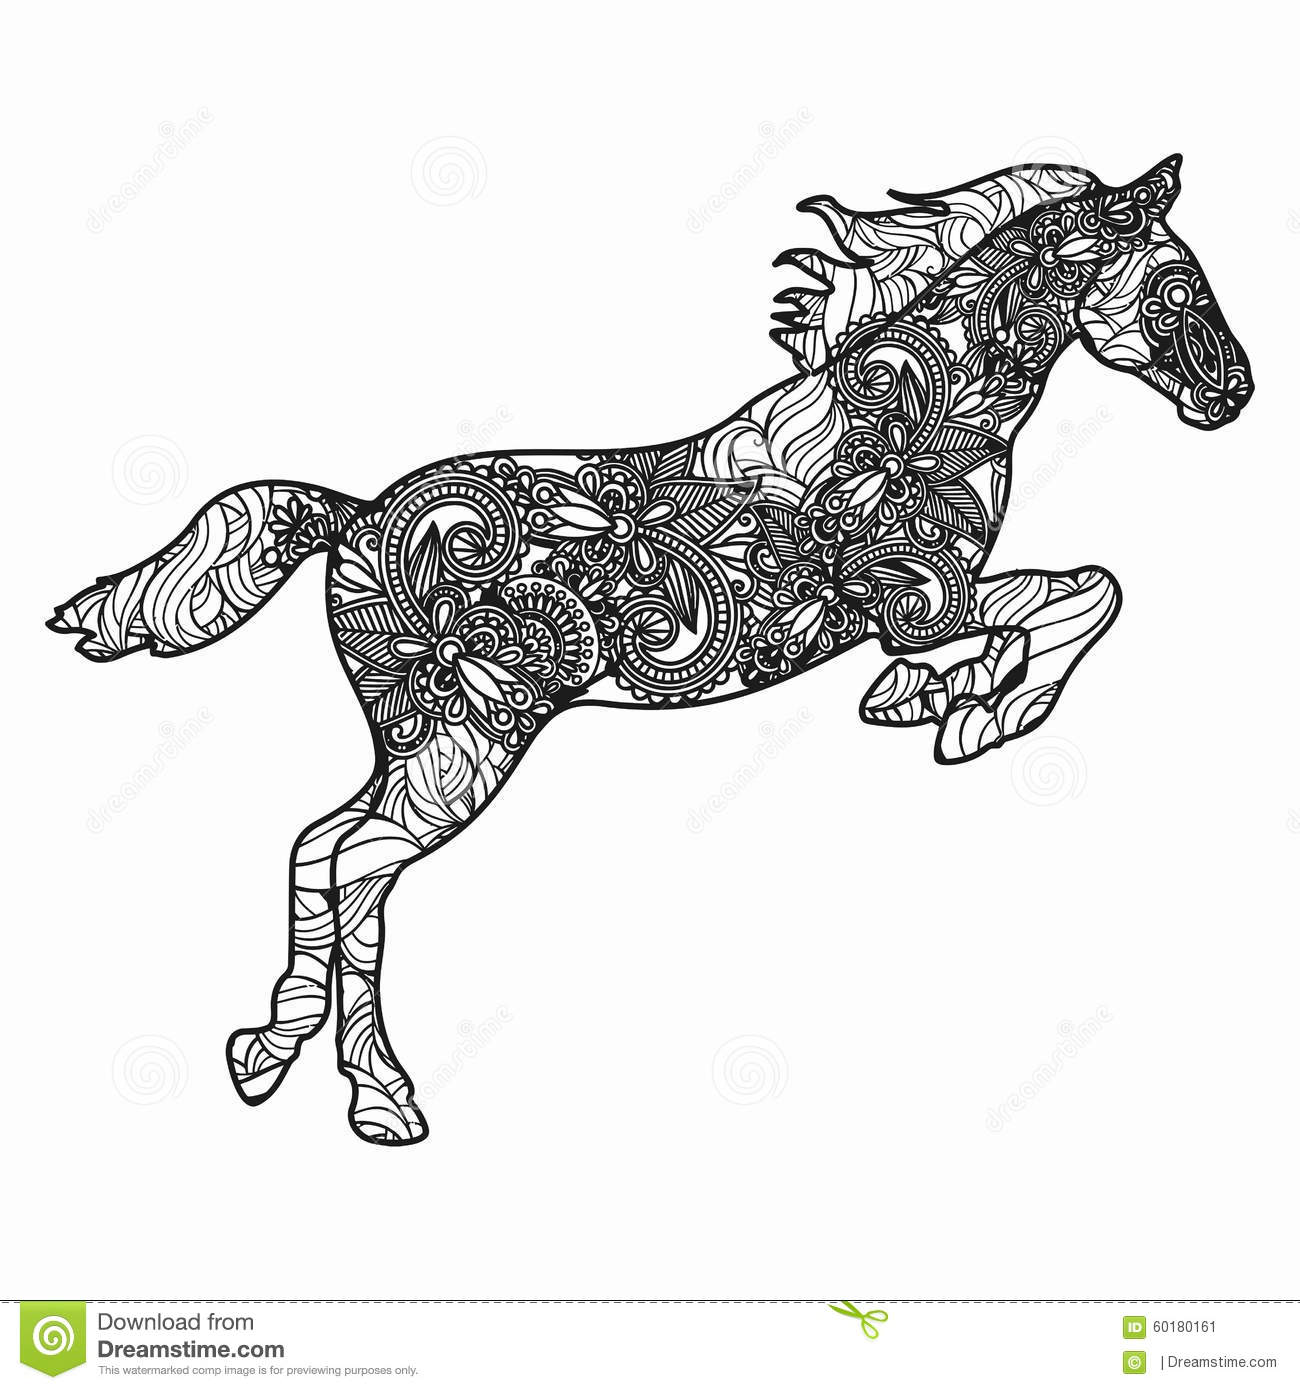 Abstract Horse Coloring Pages : Zentangle stylized horse illustration hand drawn doodle